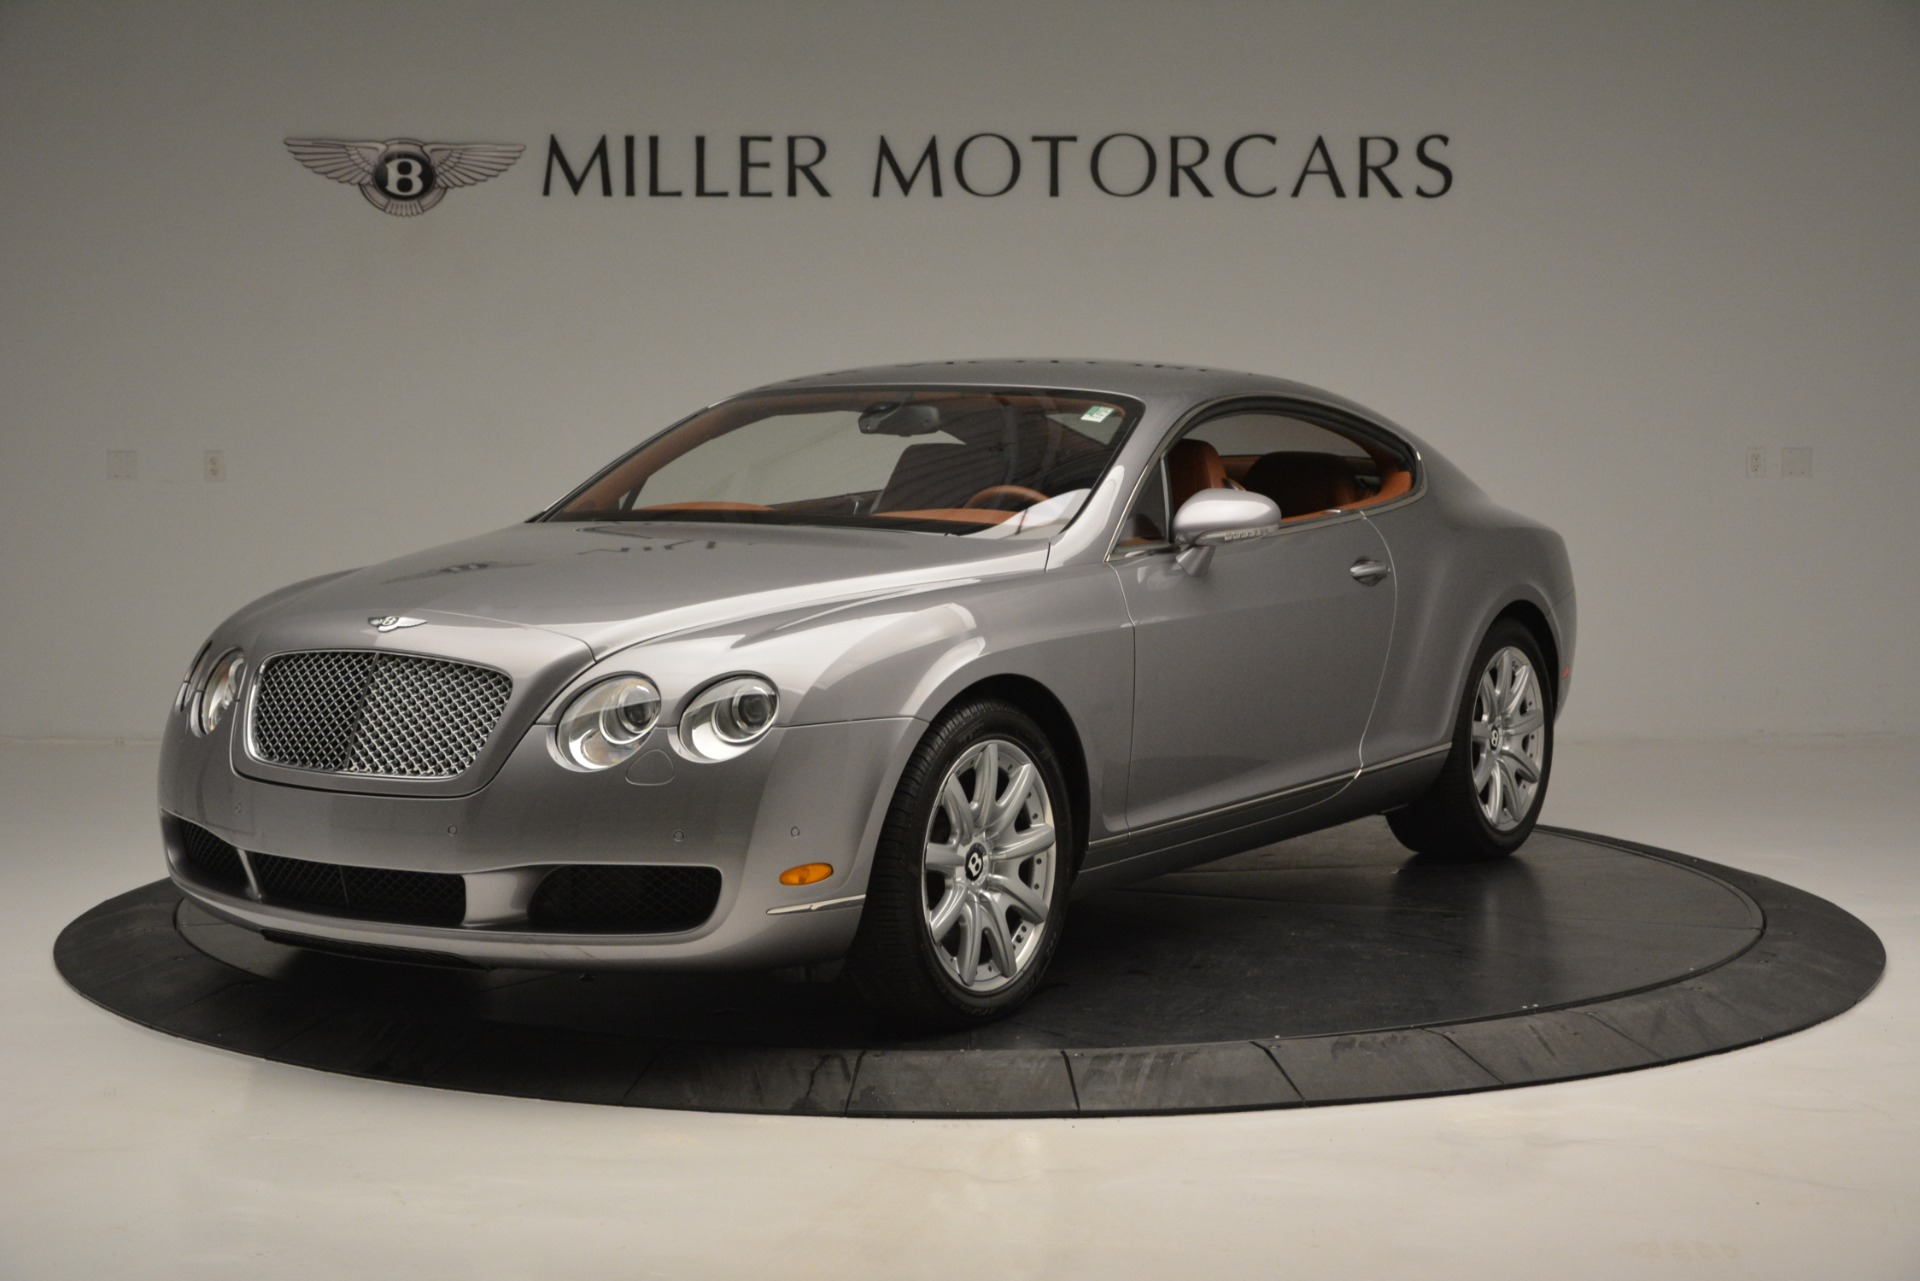 Used 2005 Bentley Continental GT GT Turbo For Sale In Greenwich, CT